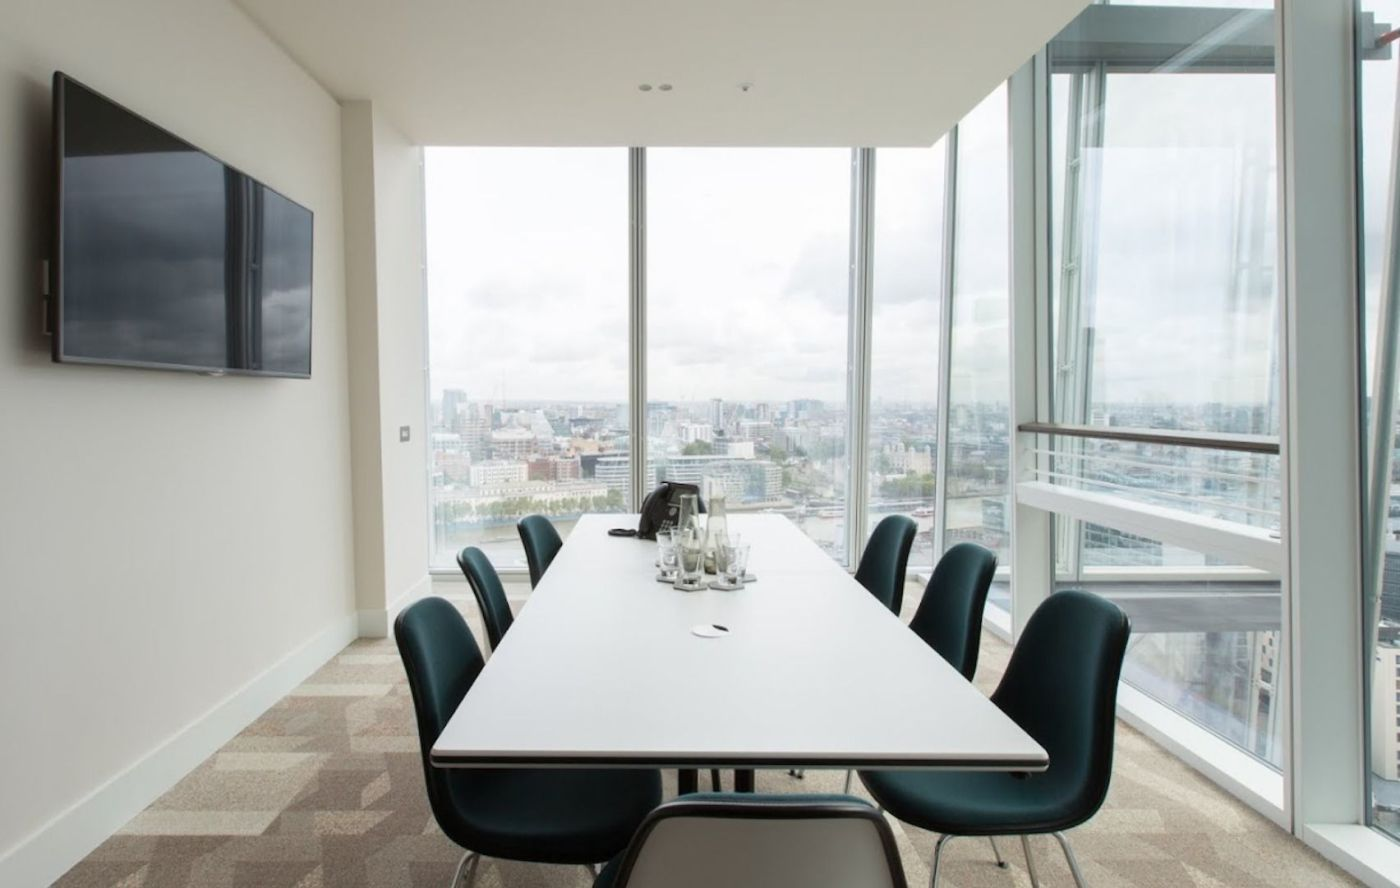 A meeting room with two glass walls and a long table with 6 black chairs